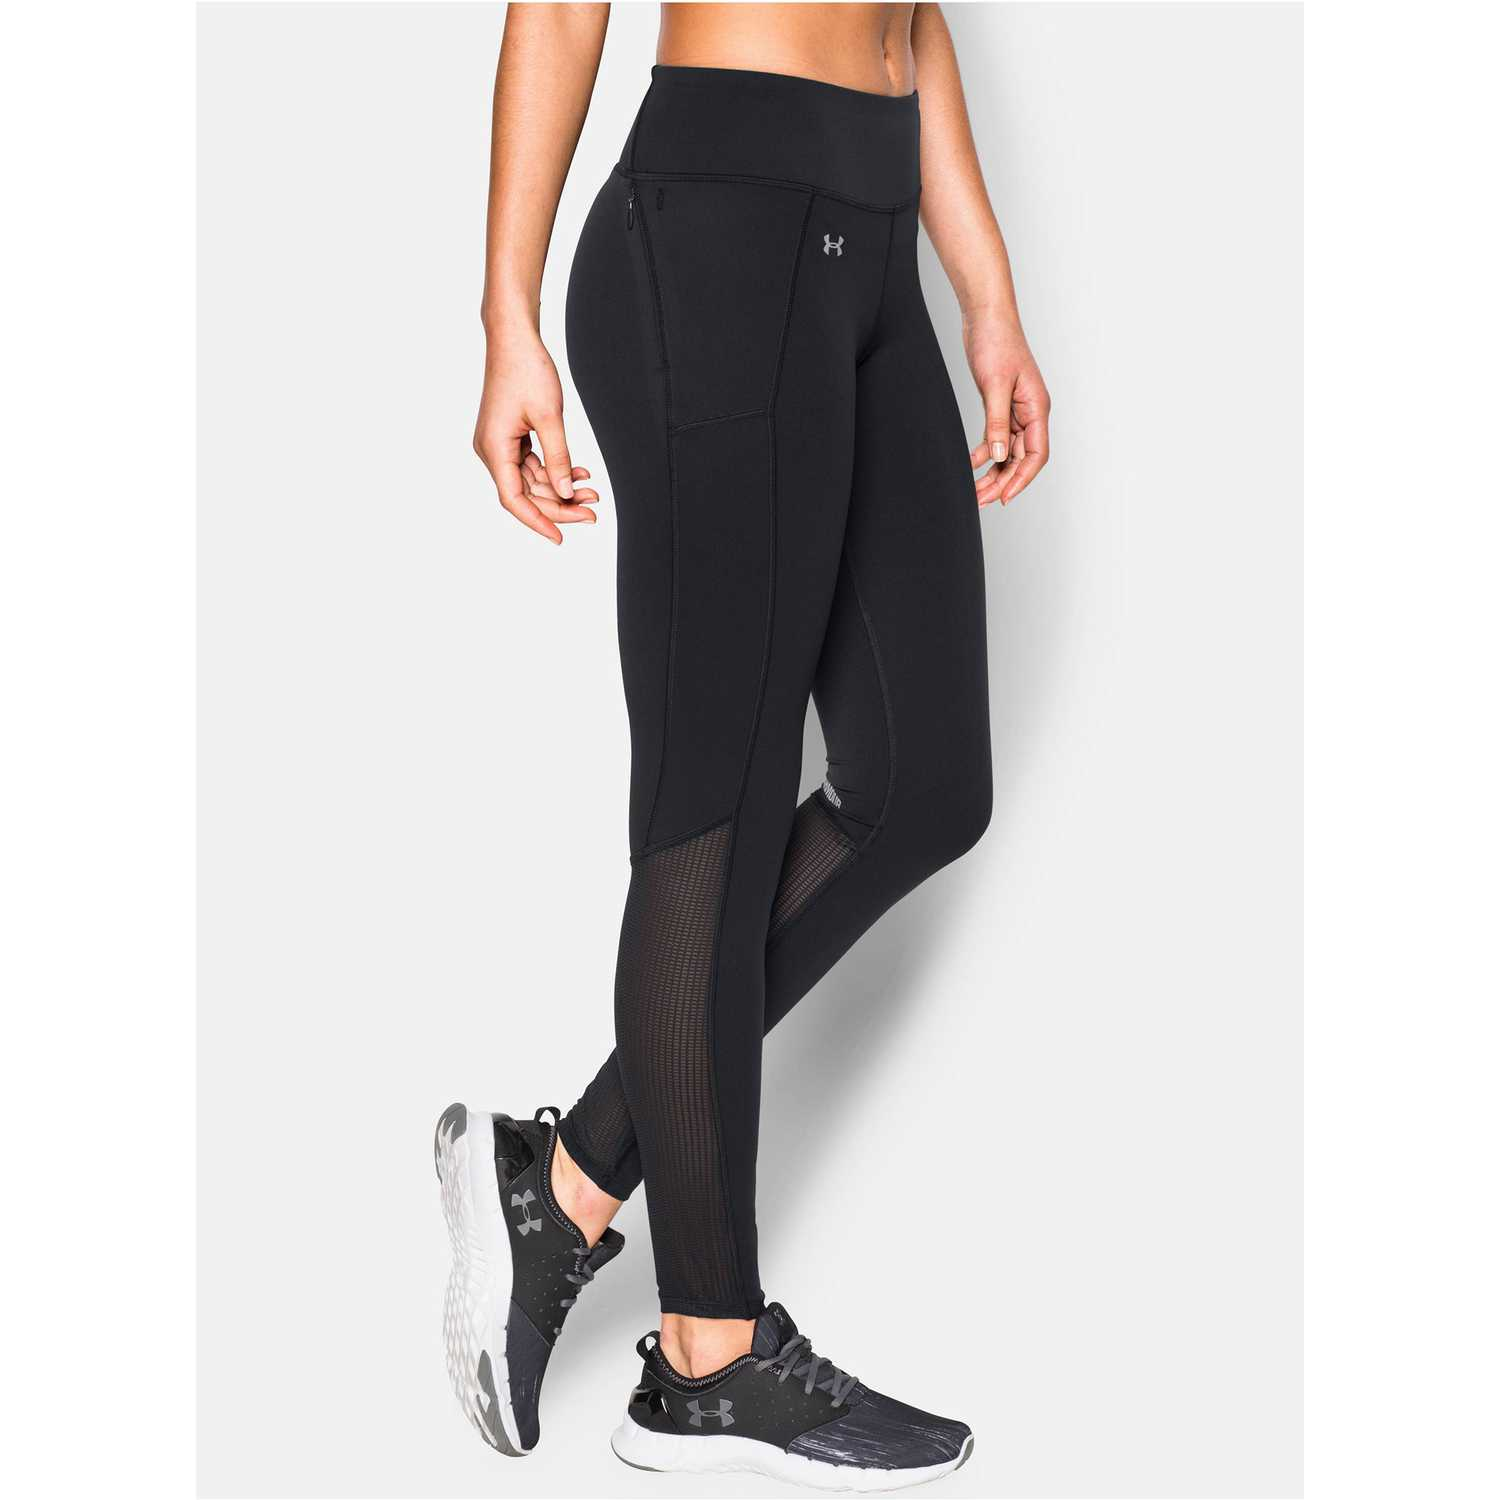 Leggin de Mujer Under Armour Negro fly by 2.0 legging